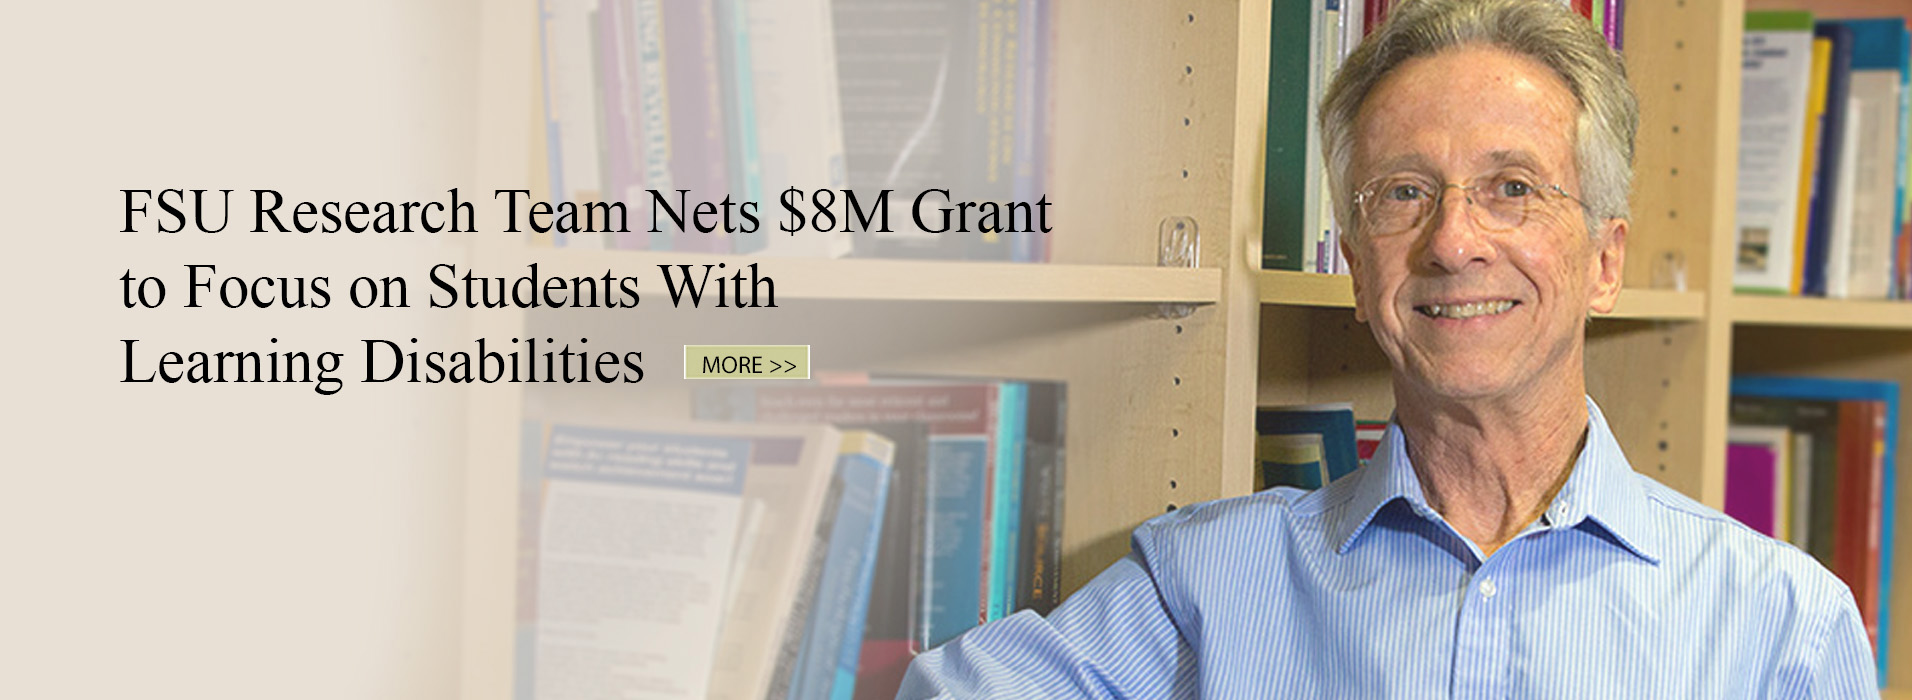 FSU Research Team Nets $8M grant to Focus on Students With Learning Disabilities